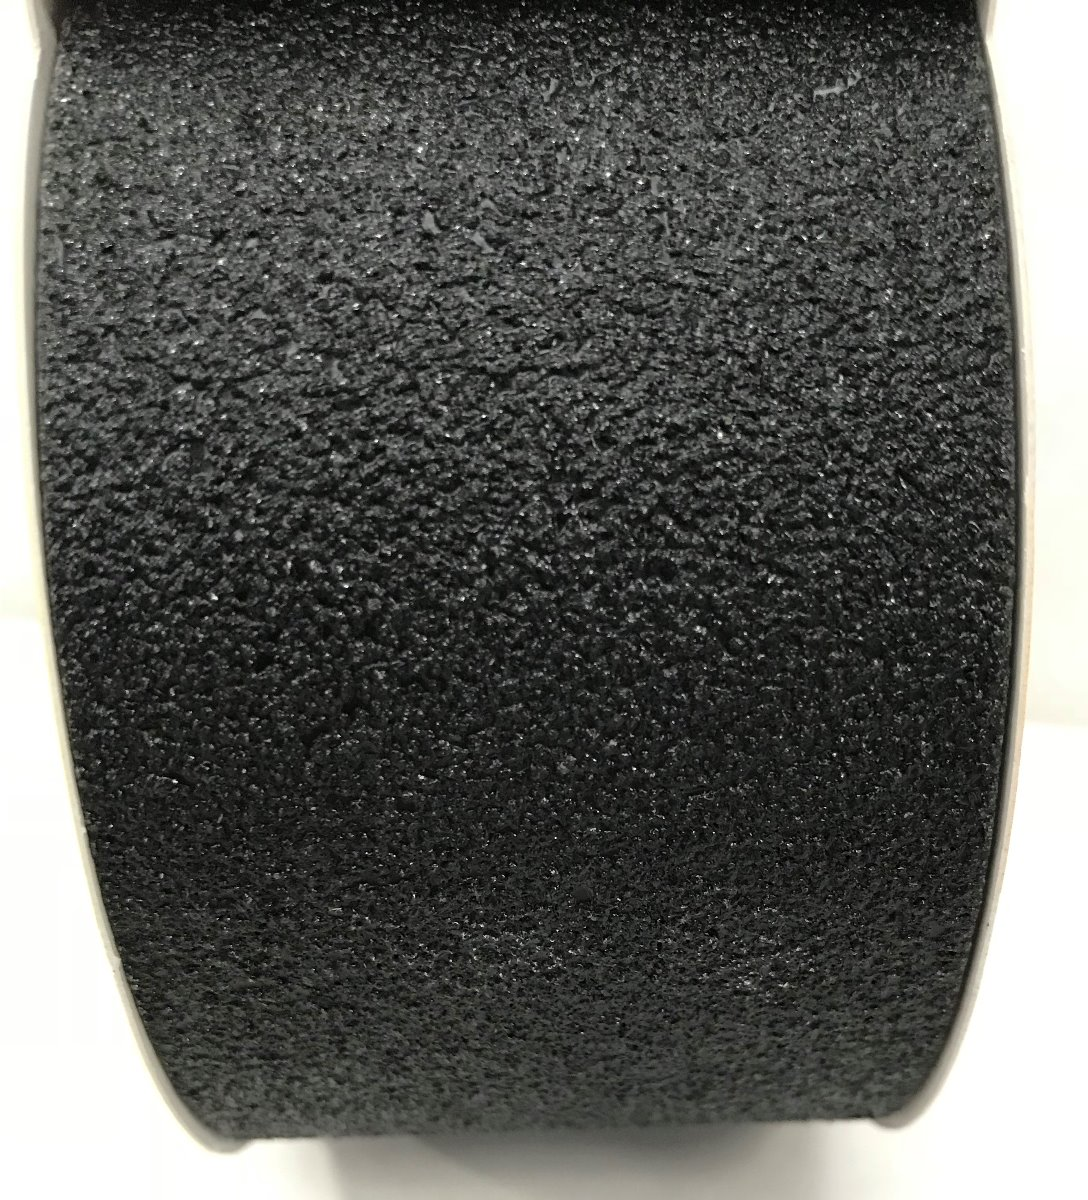 3M 600 Series Safety Walk Tape - Close Up